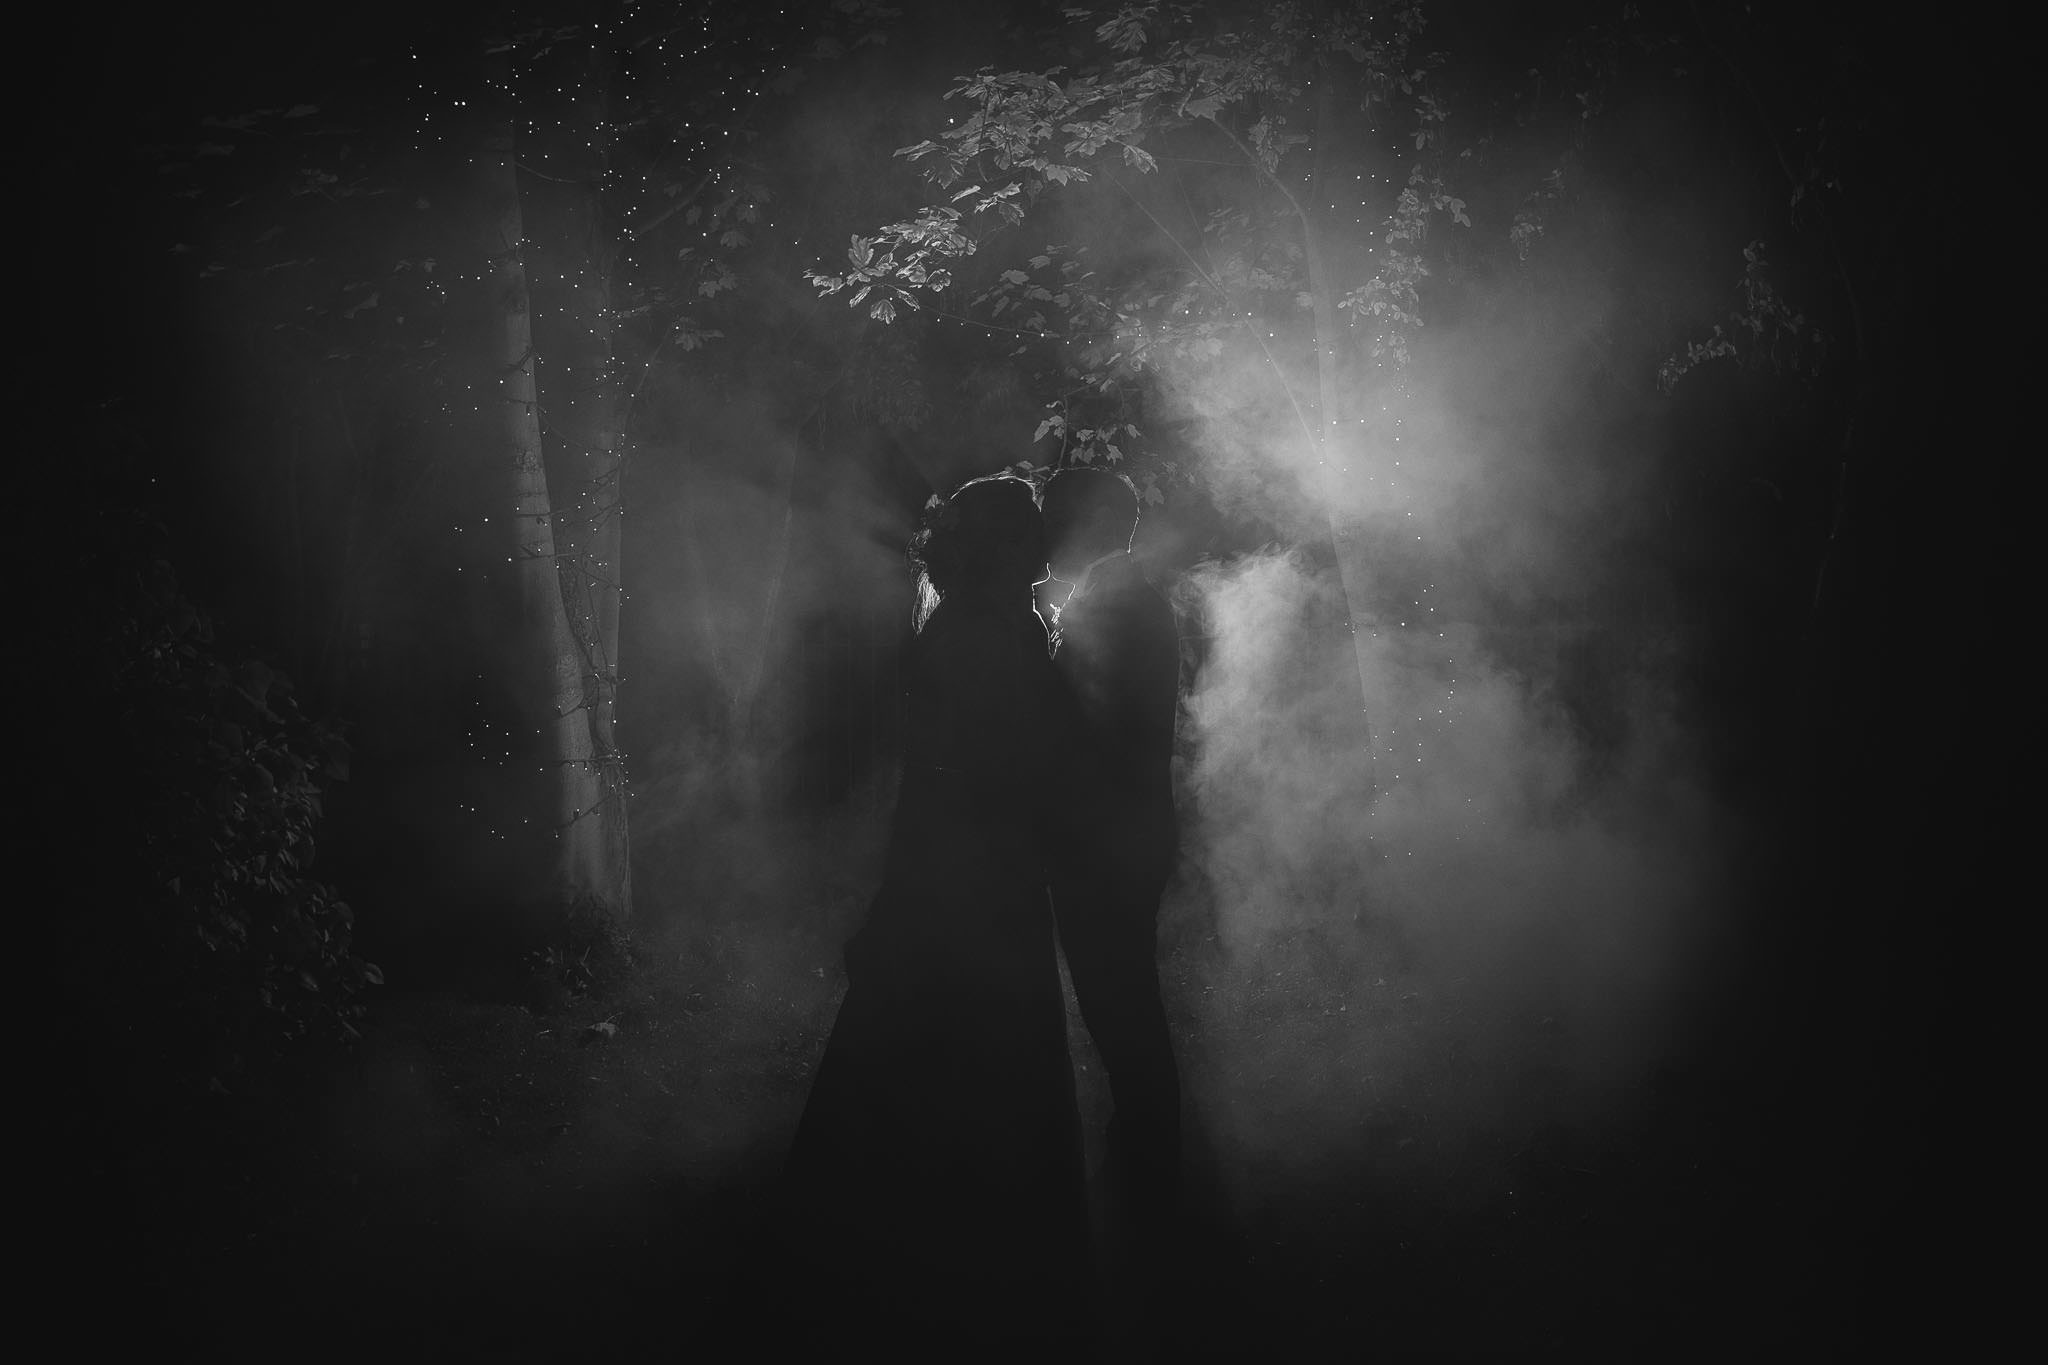 A romantic black and white photo of the bride and groom lit from behind through smoke